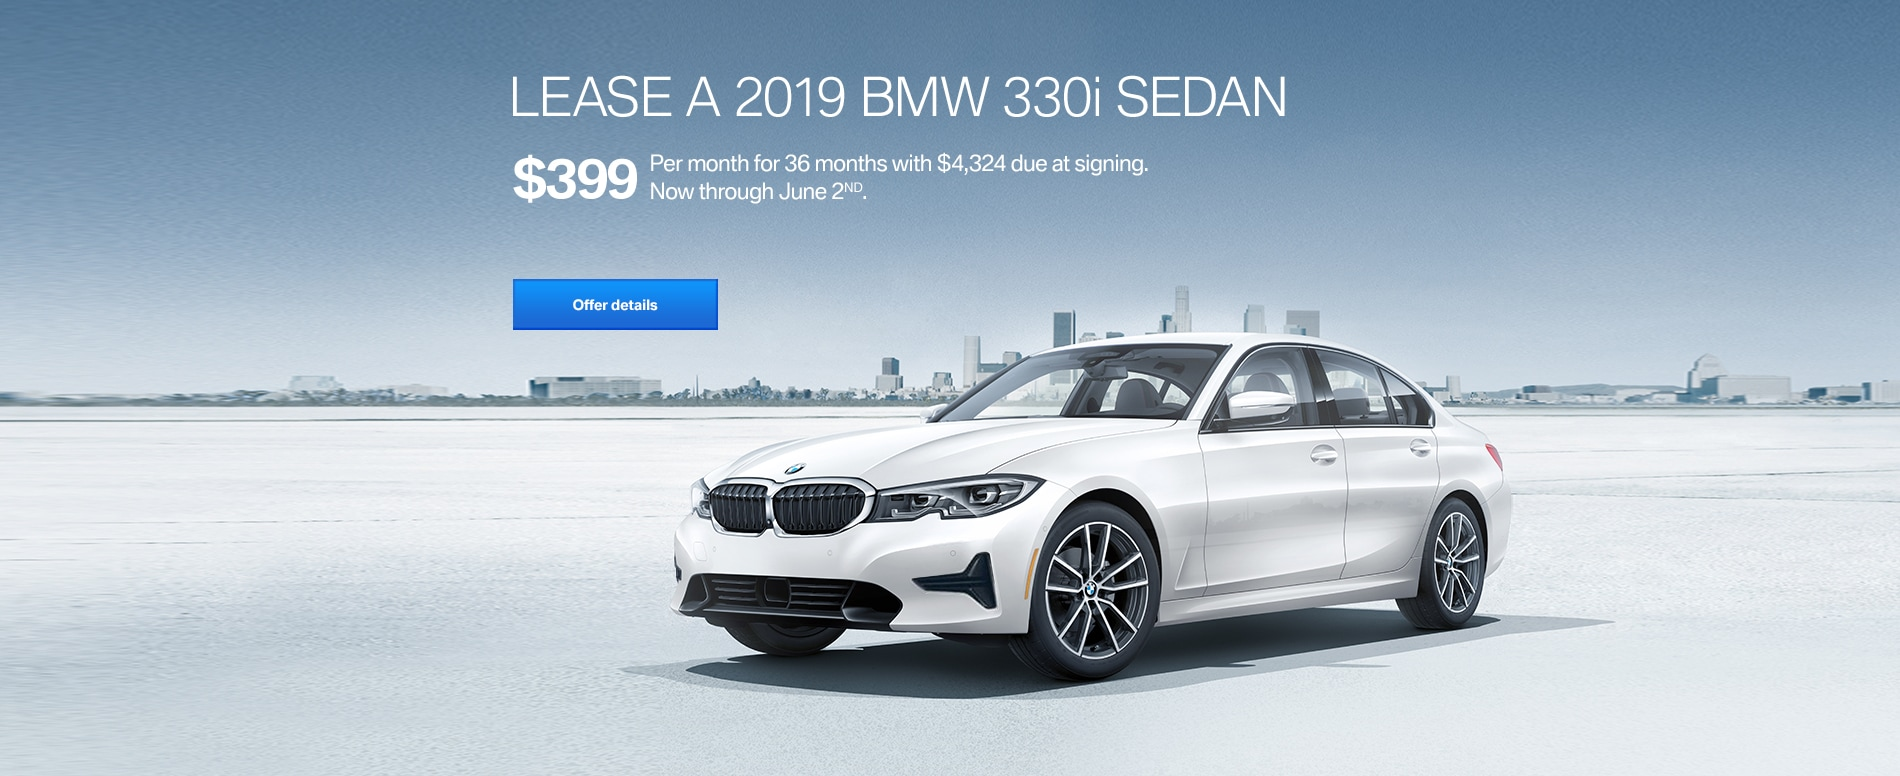 BMW Of Santa Maria New Dealer Used Cars For Sale Near Lompoc